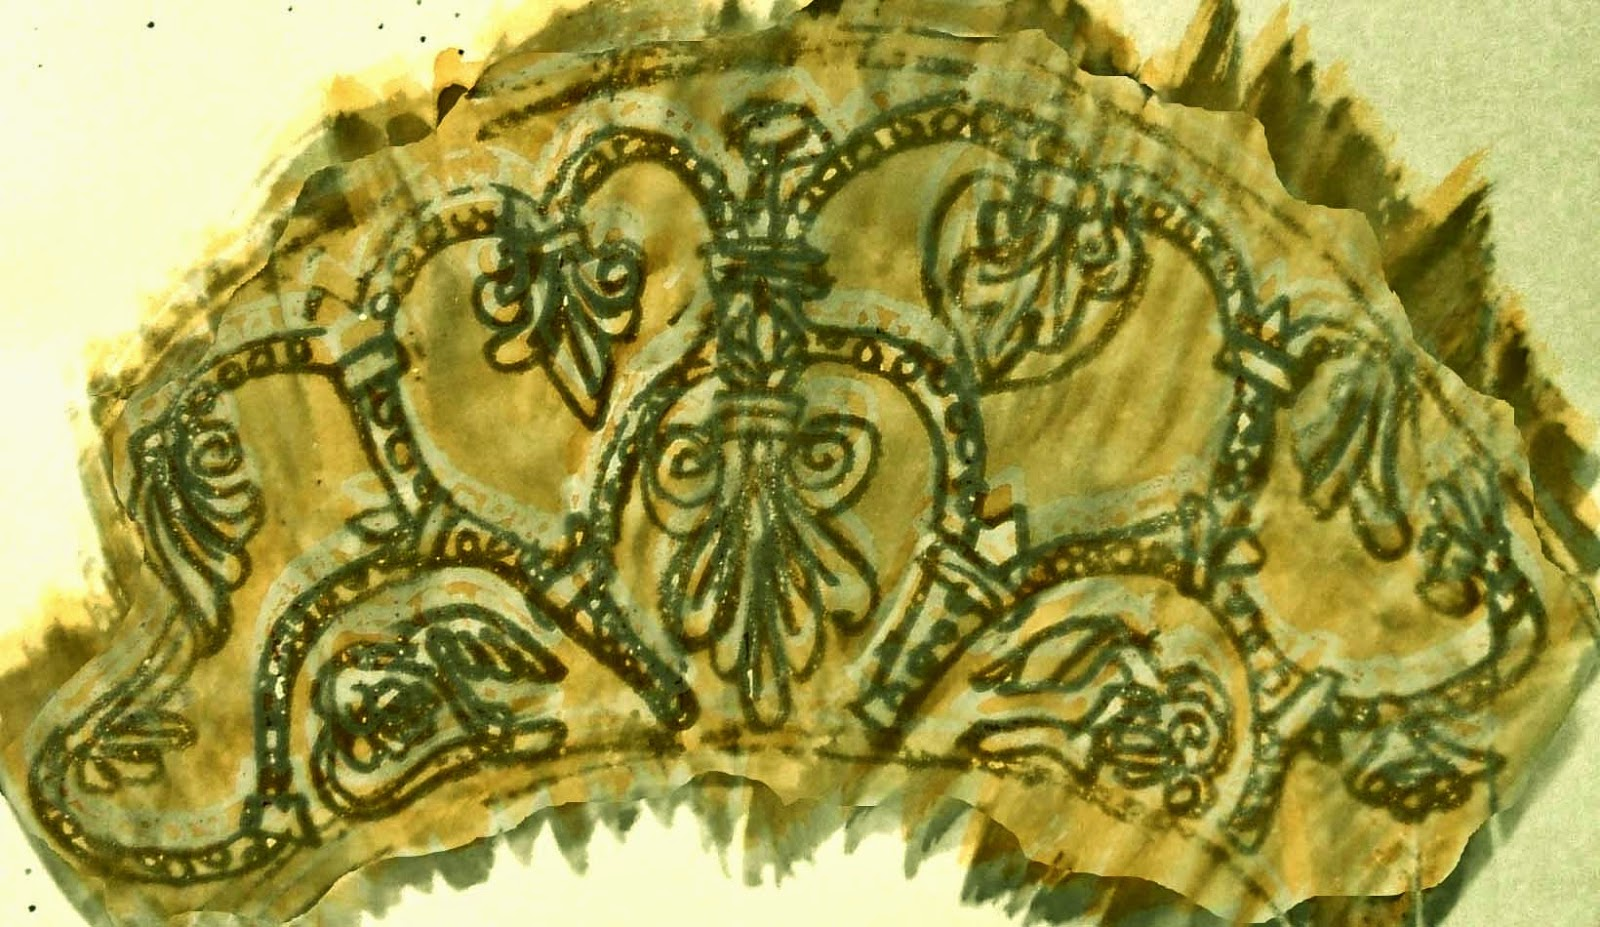 My pen and watercolour sketch of the tympanum, digitally enhanced